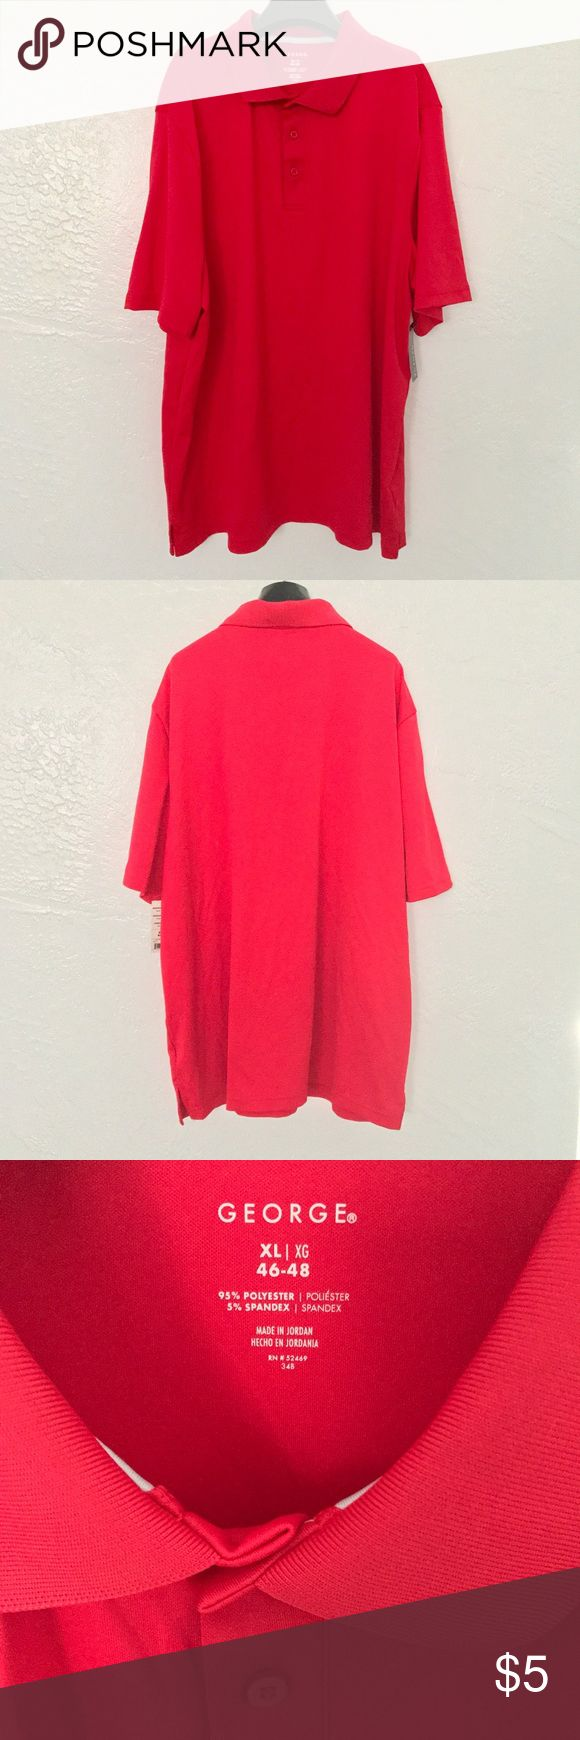 NWT George Moisture Wicking UPF15 Golf Shirt Sz XL NWT George Moisture Wicking UPF15 Red Golf Shirt Size XL  20% bundle discount! Smoke- & pet-free home Any questions? Just ask! George Shirts Polos